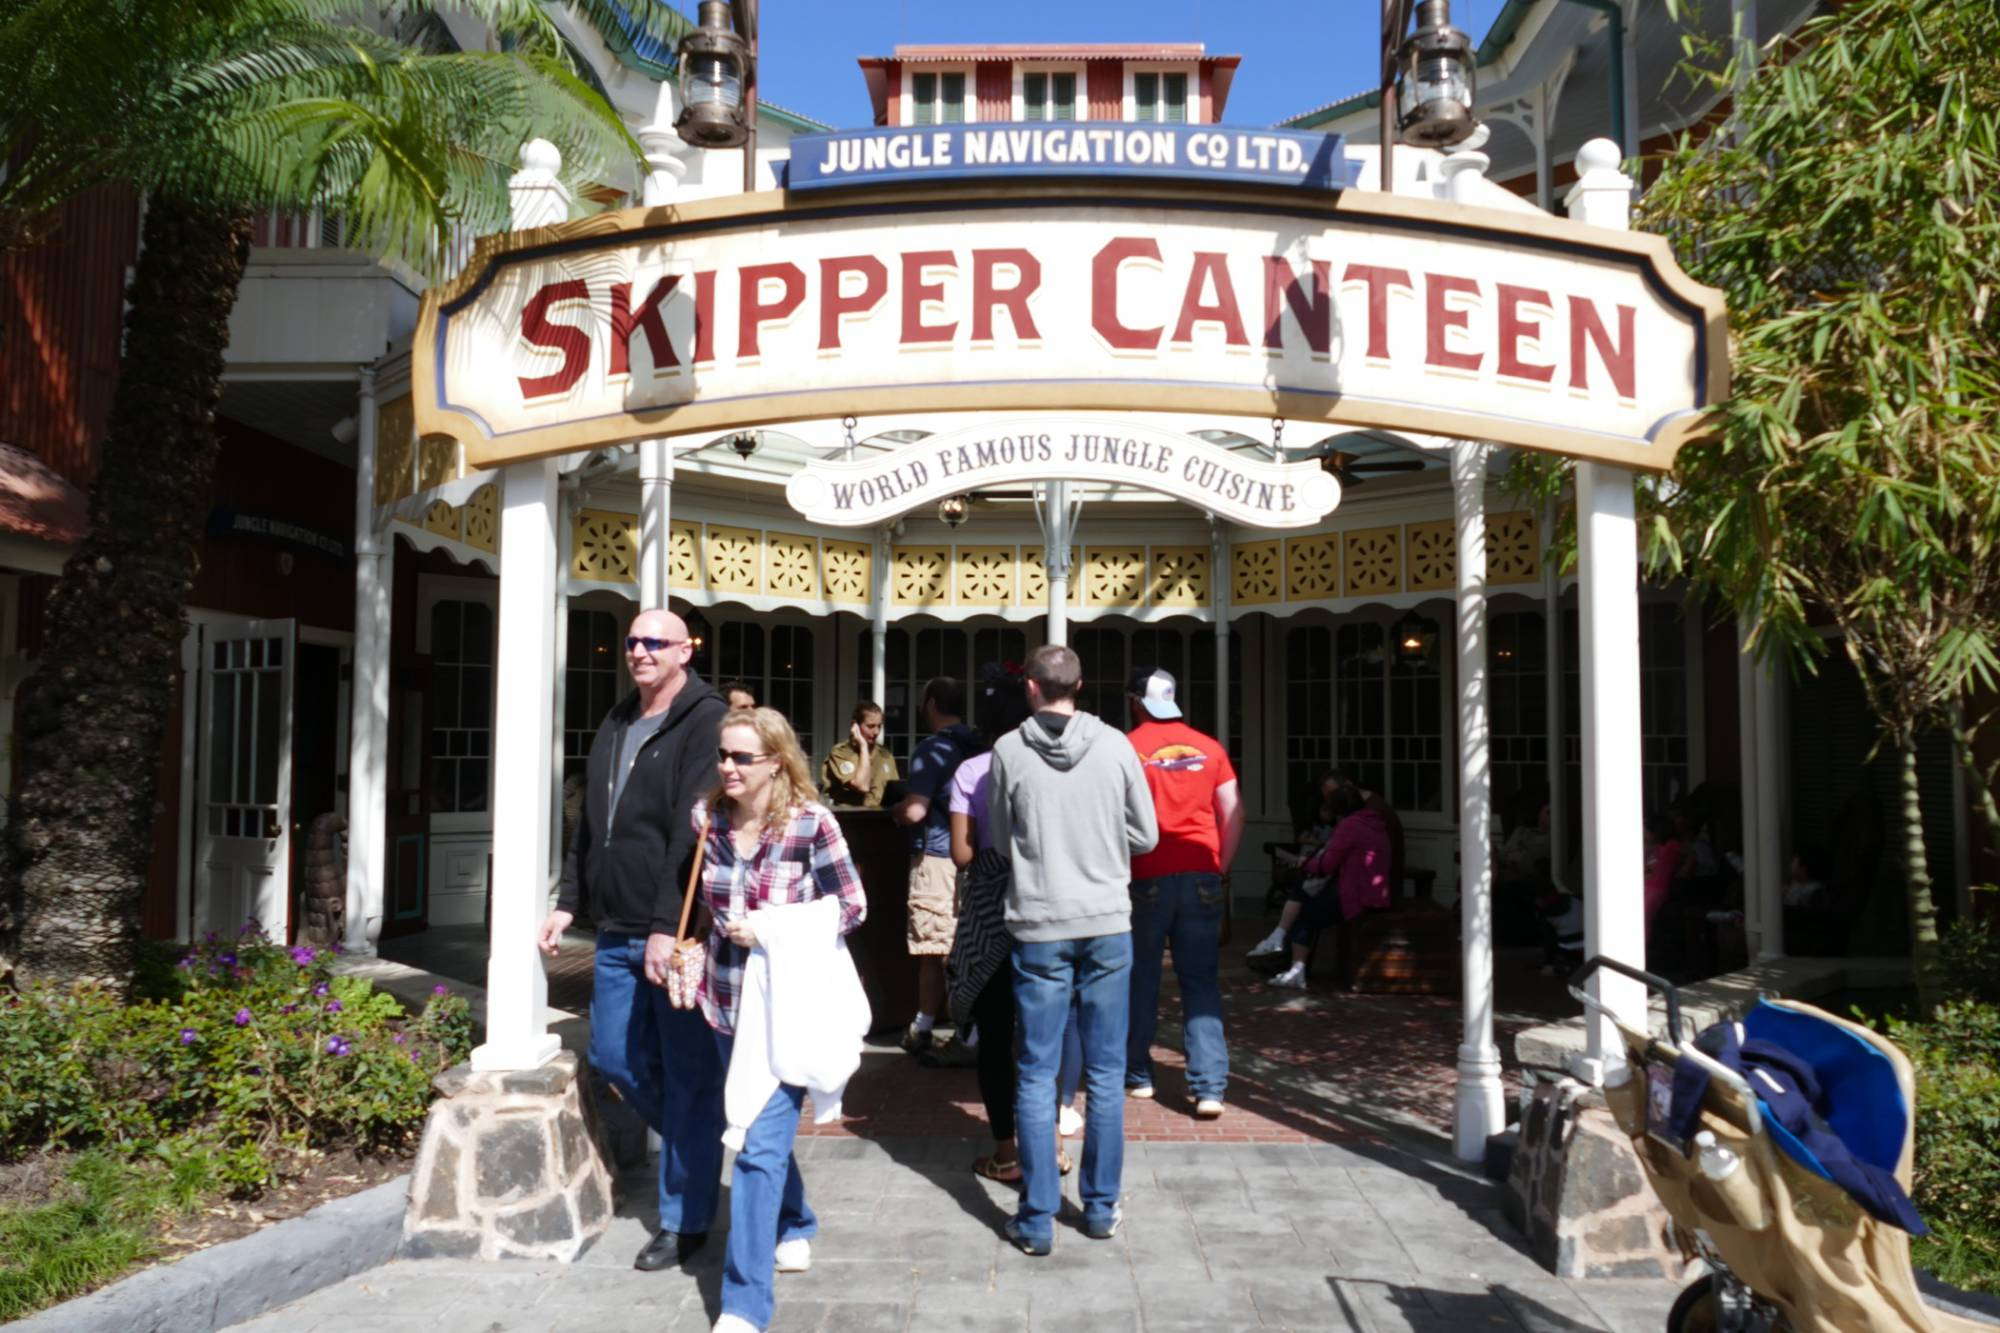 Skipper Canteen - Entrance photo